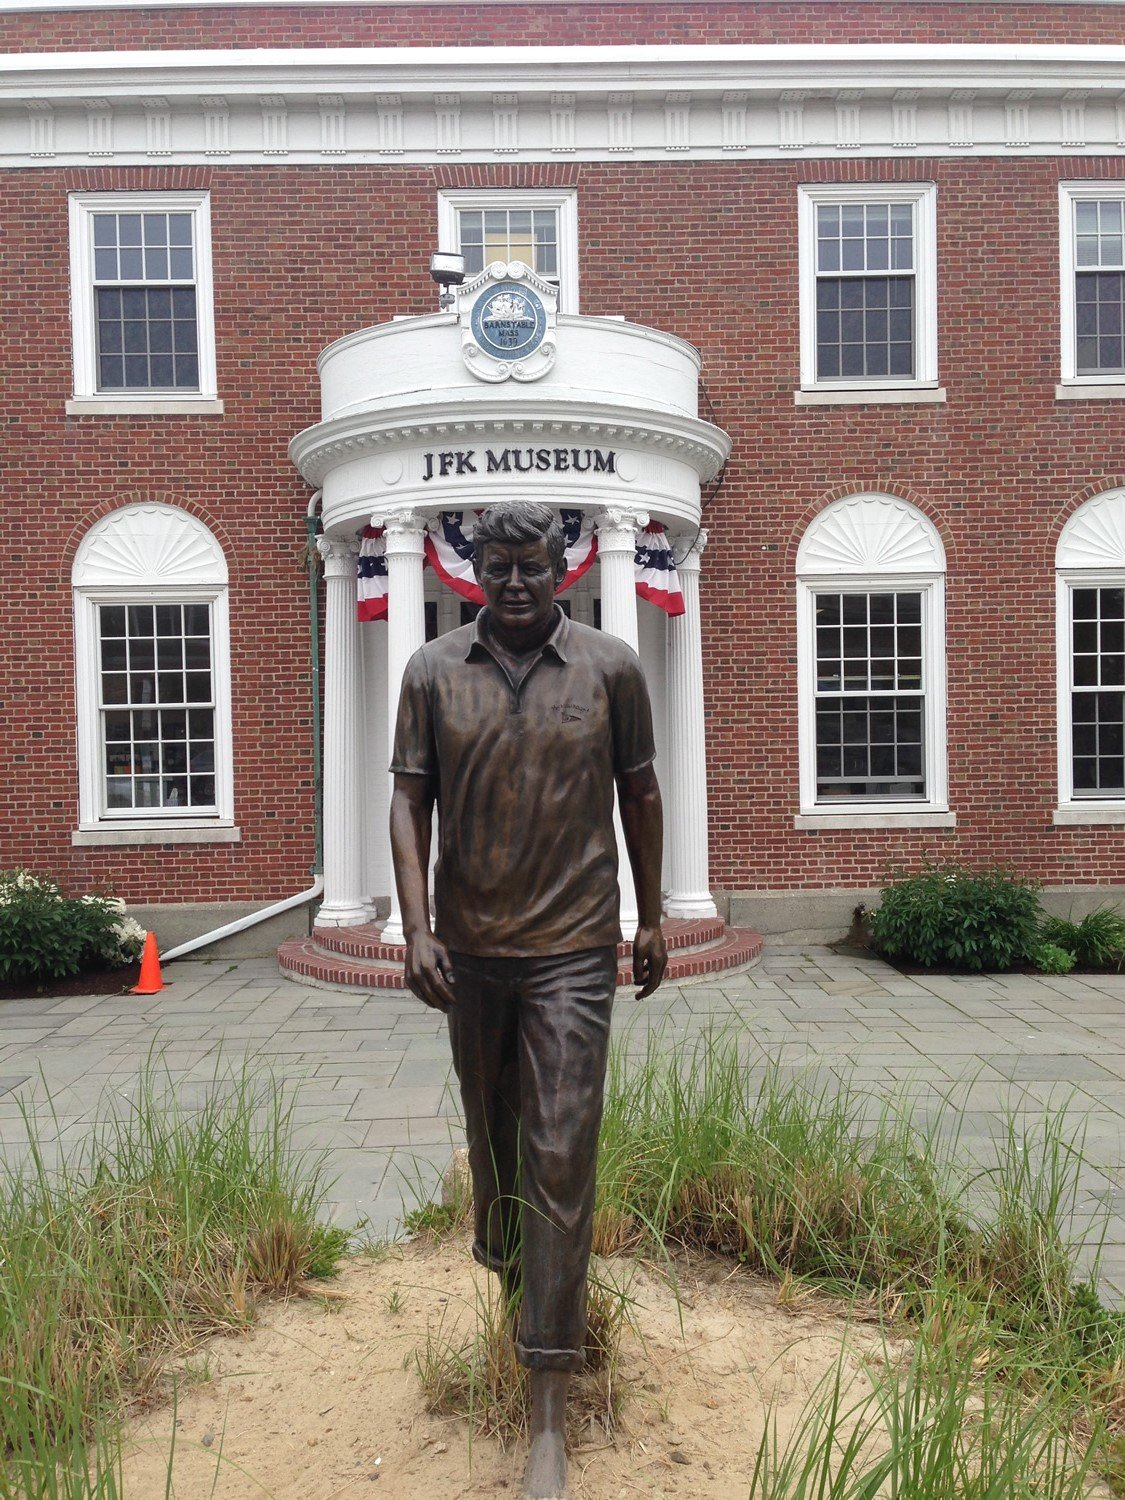 Closer image of statue of John F. Kennedy outside of the museum.